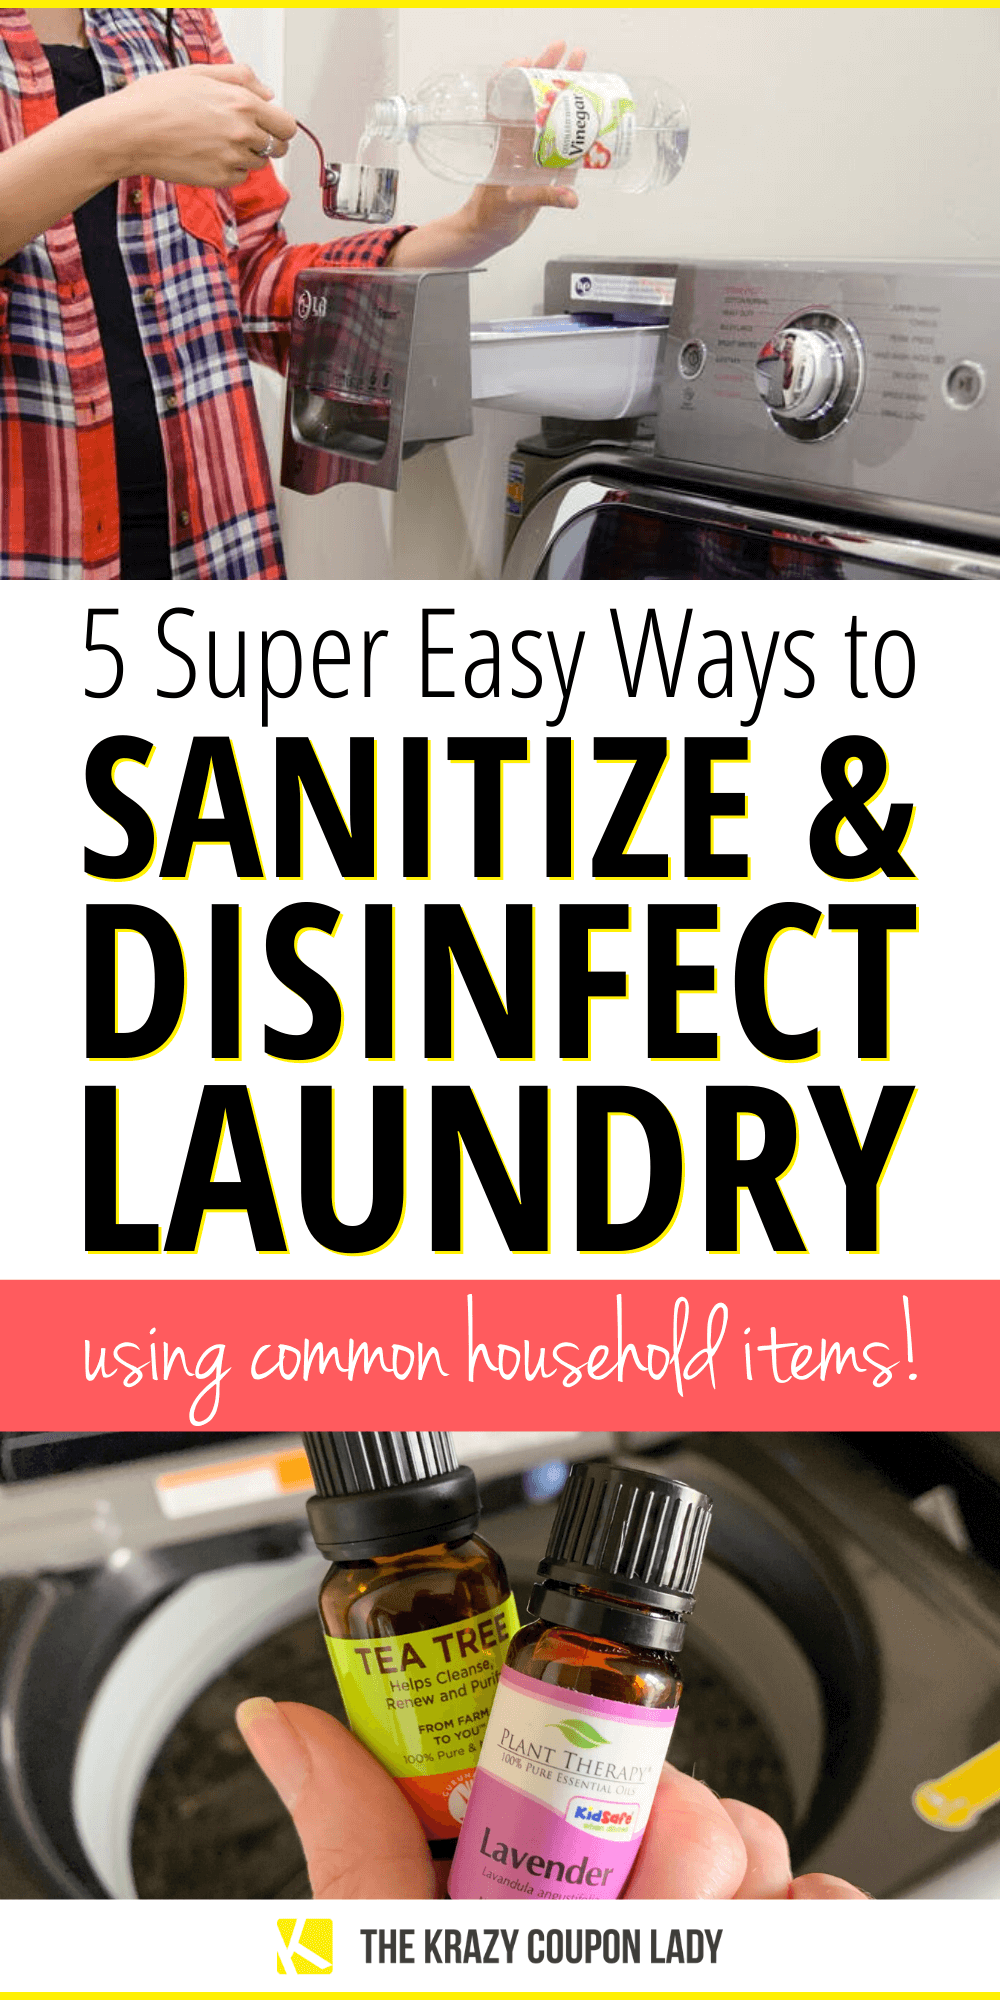 How to Sanitize & Disinfect Laundry with Common Household